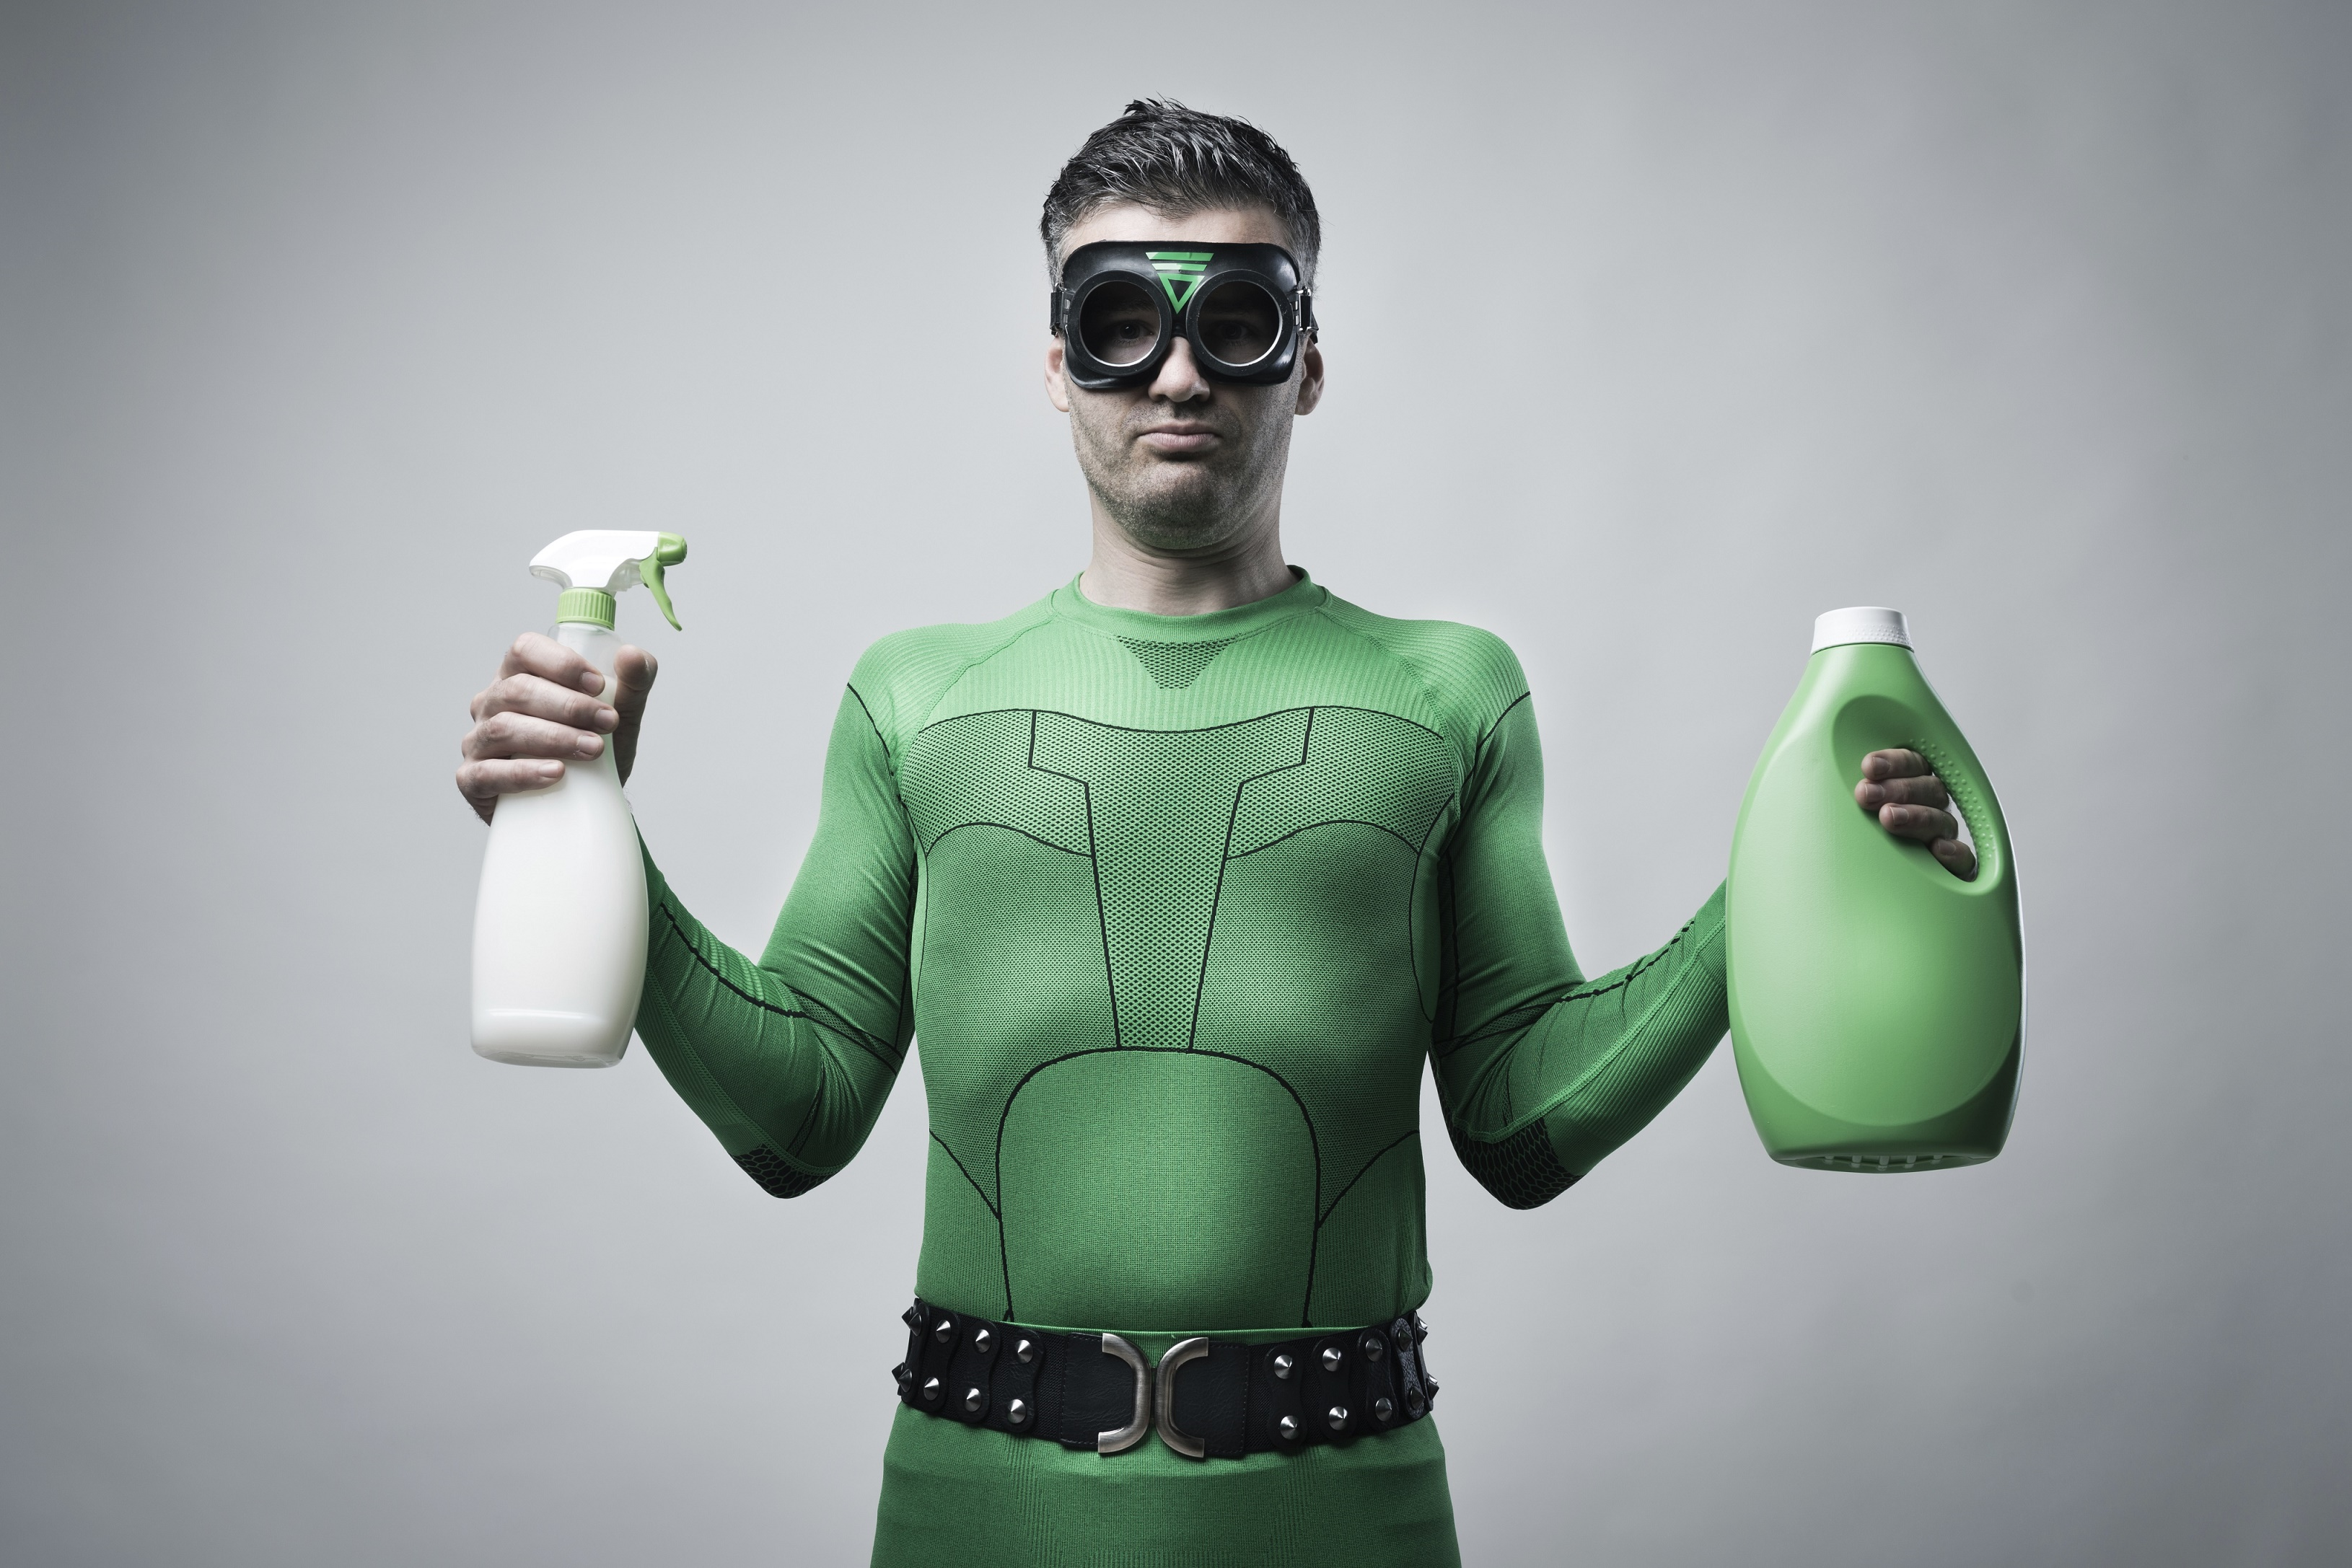 Green superhero showing spray detergent and laundry detergent.